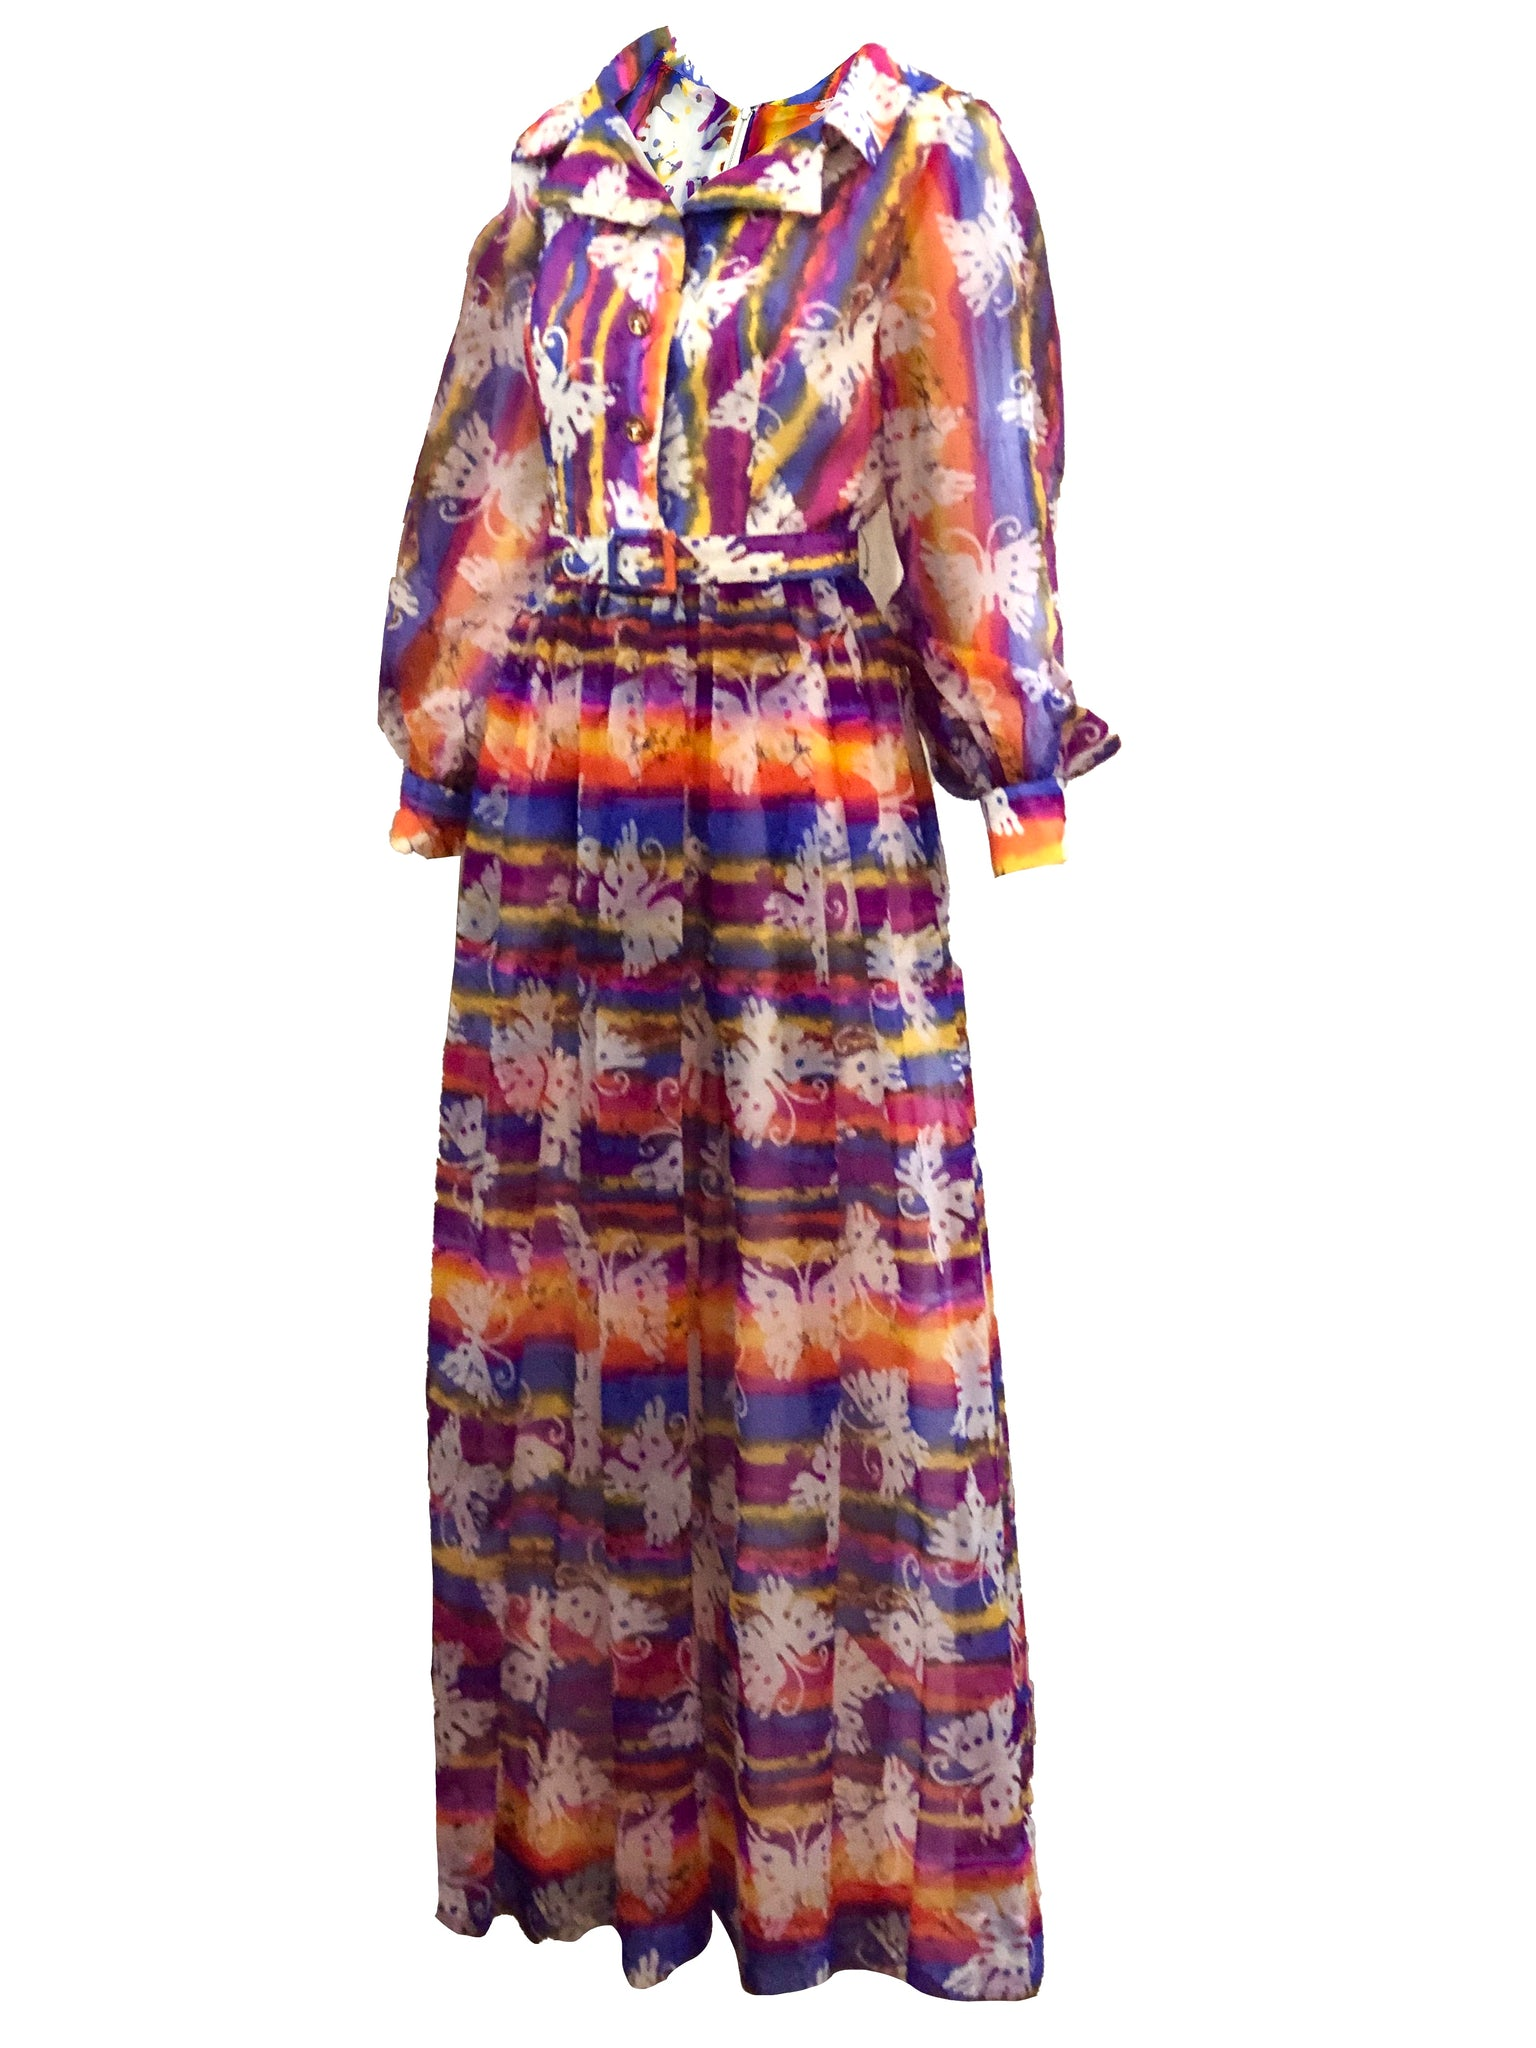 70s Butterfly Hostess Maxi Dress SIDE 2 OF 5